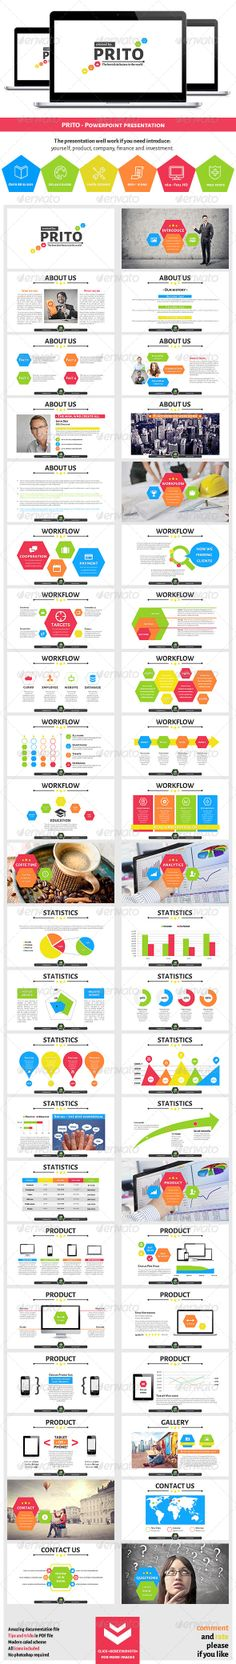 Prito Powerpoint Presentation - Business Powerpoint Templates